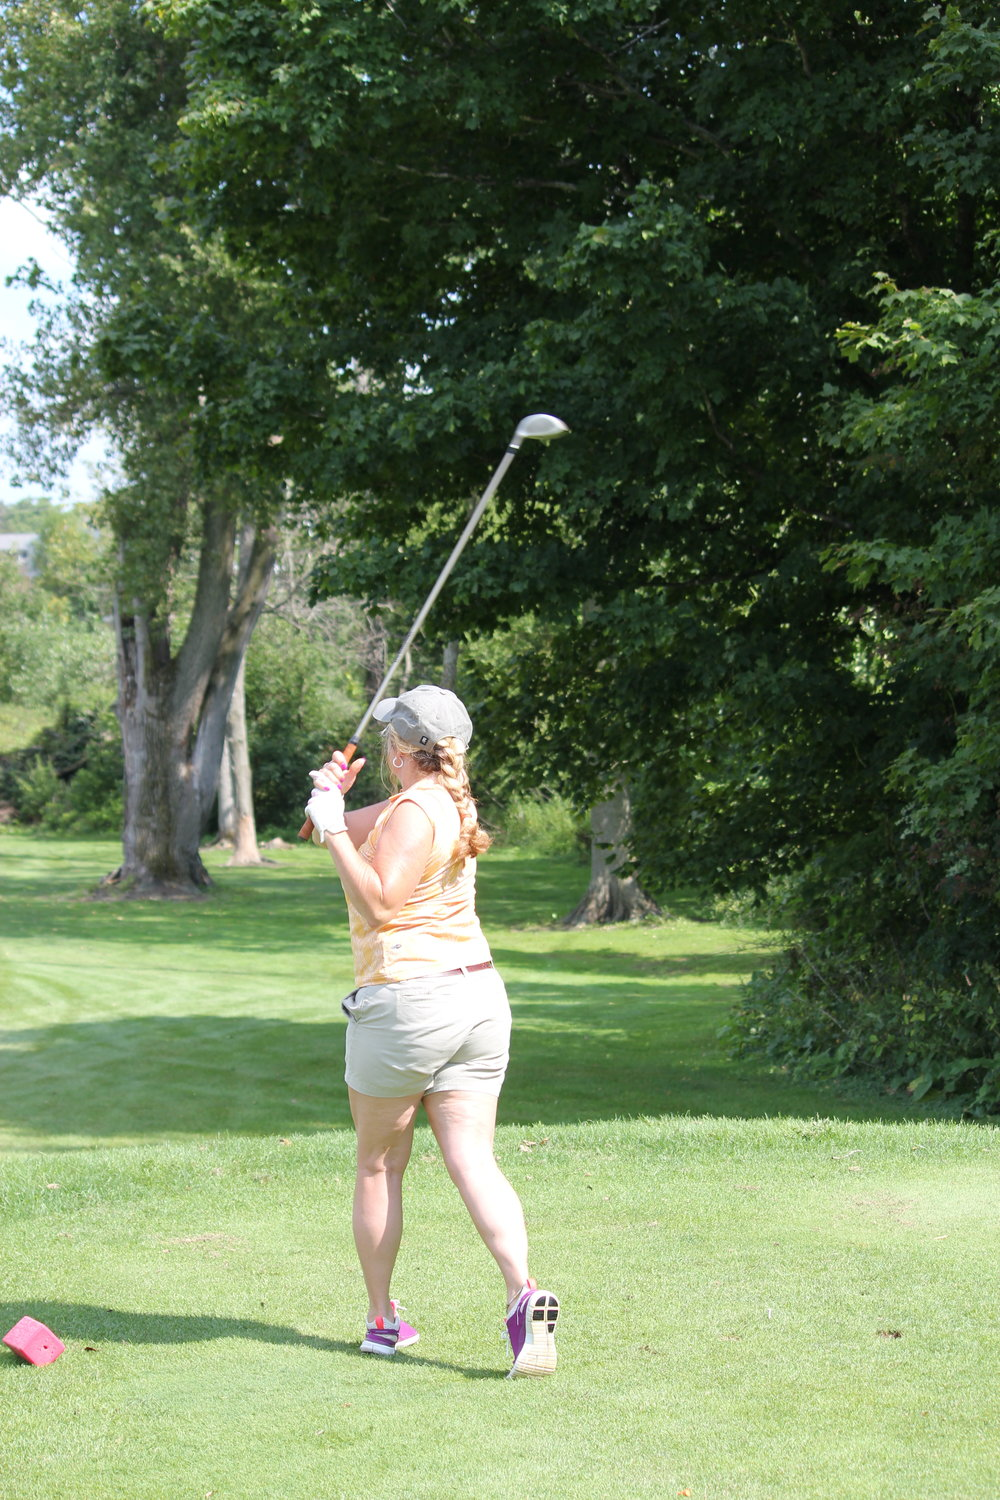 IMG_2236 golfer FFO Golf Outing 2015 copy.JPG